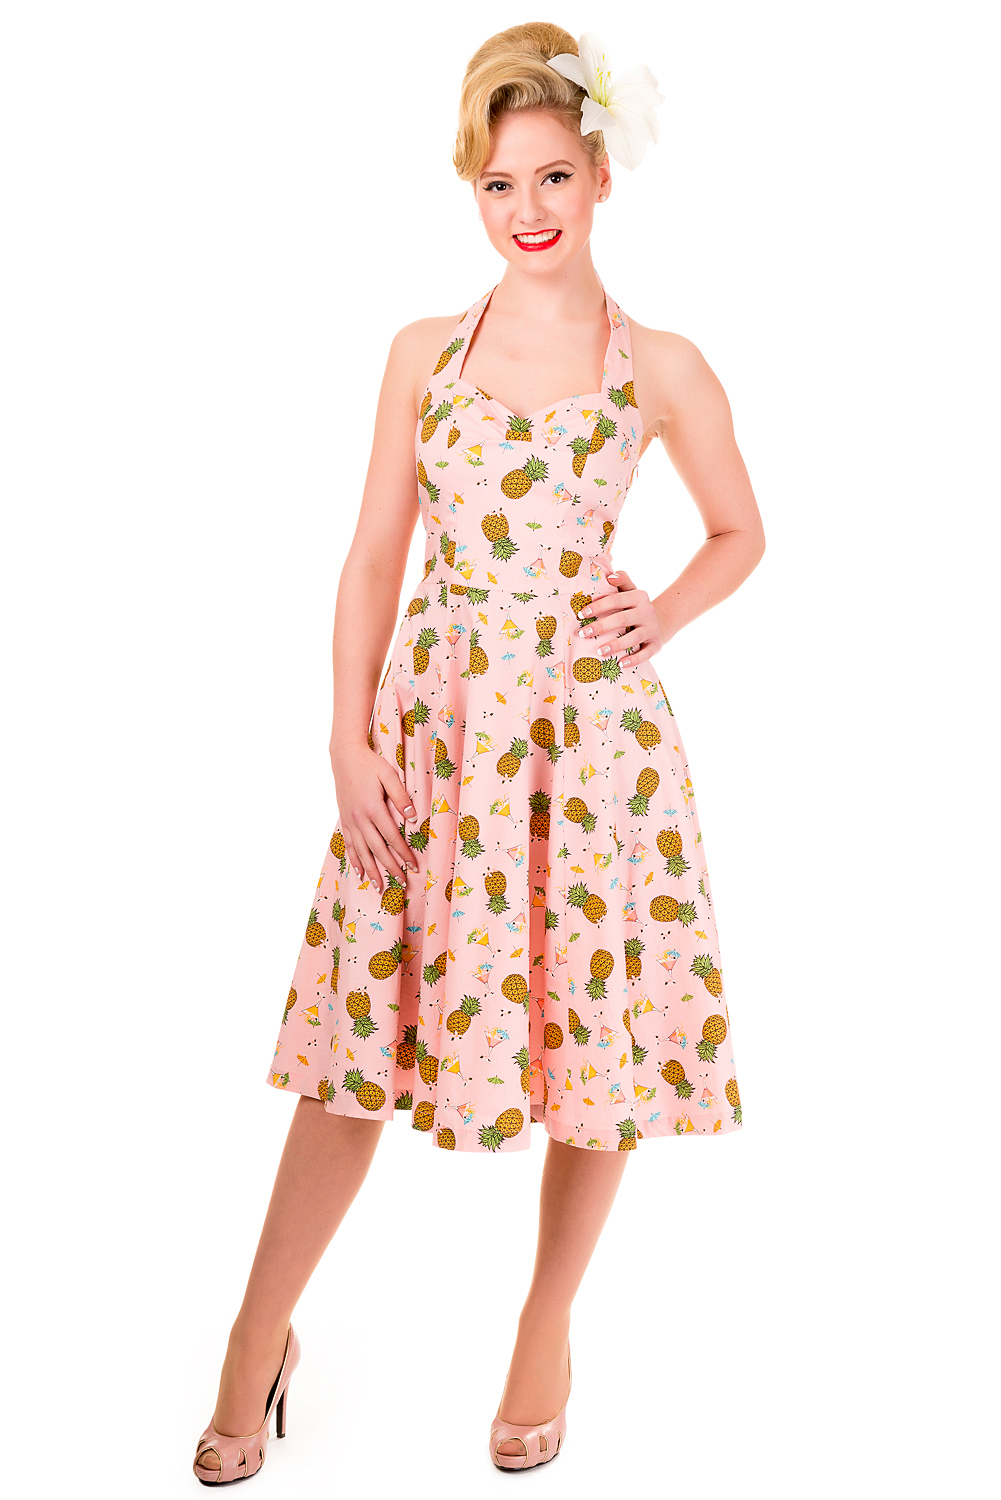 Banned This Love Pineapple Summer Dress Regular Sizing